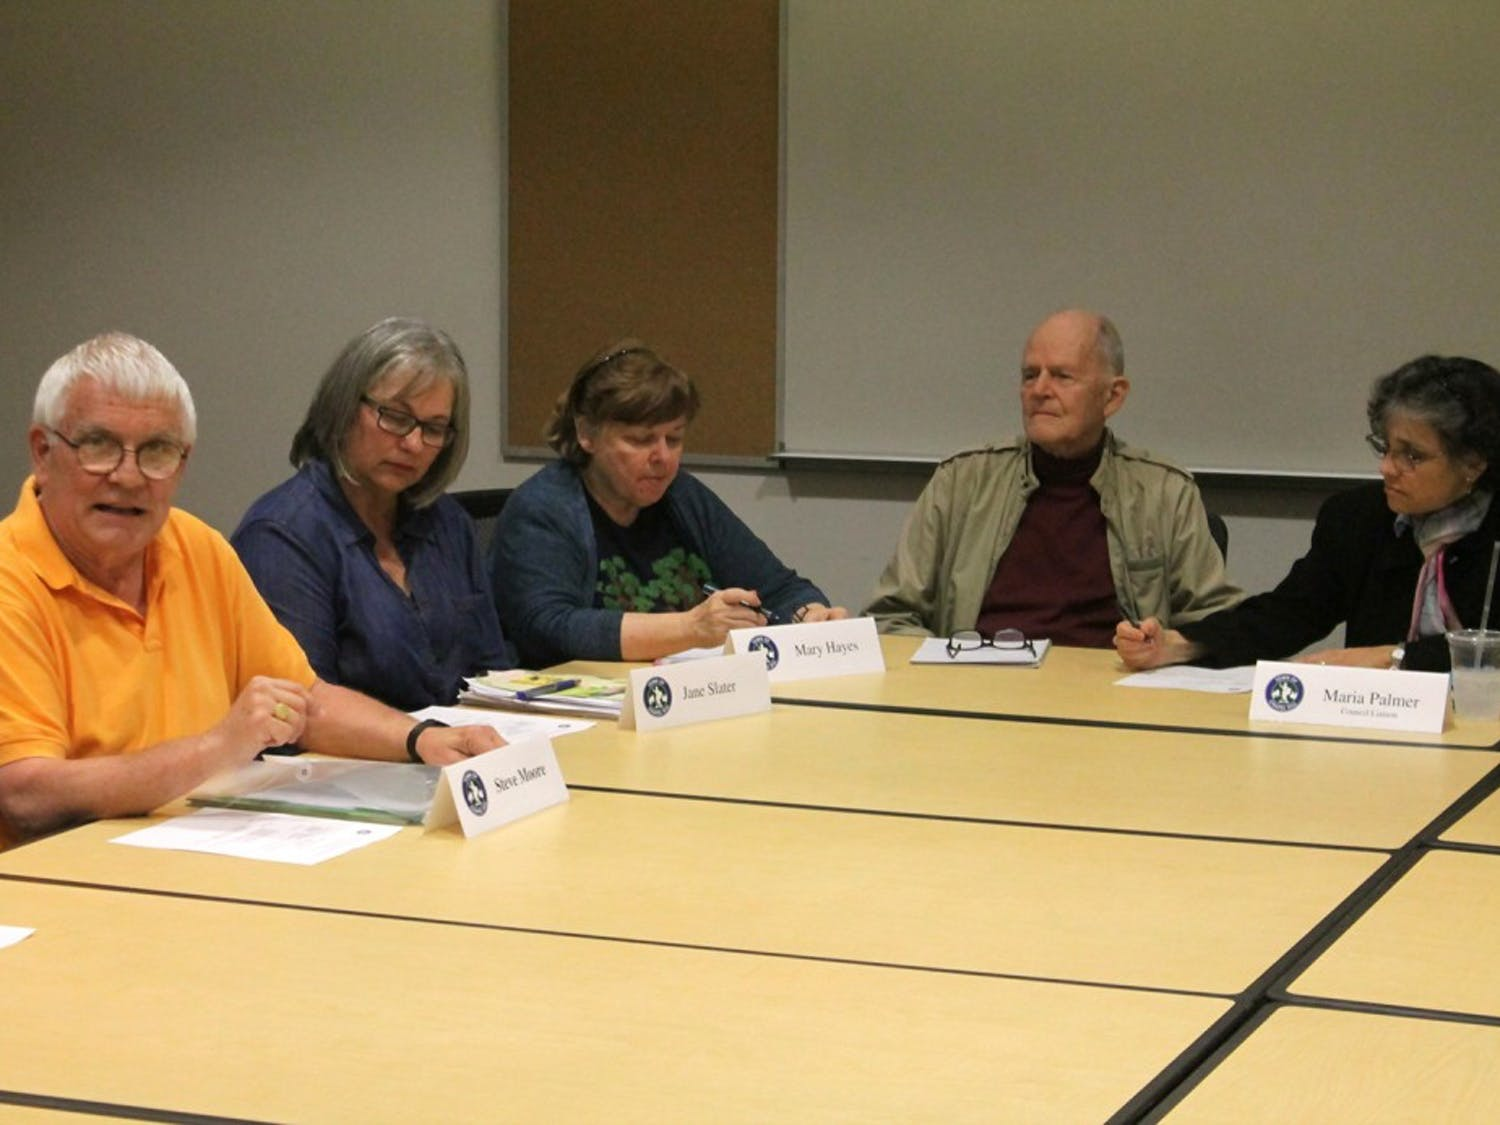 (Left) Steve Moore, Jane Slater, Mary Hayes, Sanley Peele, and Maria Palmer discuss a removed memorial during the Cemetery Advisory Board Meeting Wednesday.